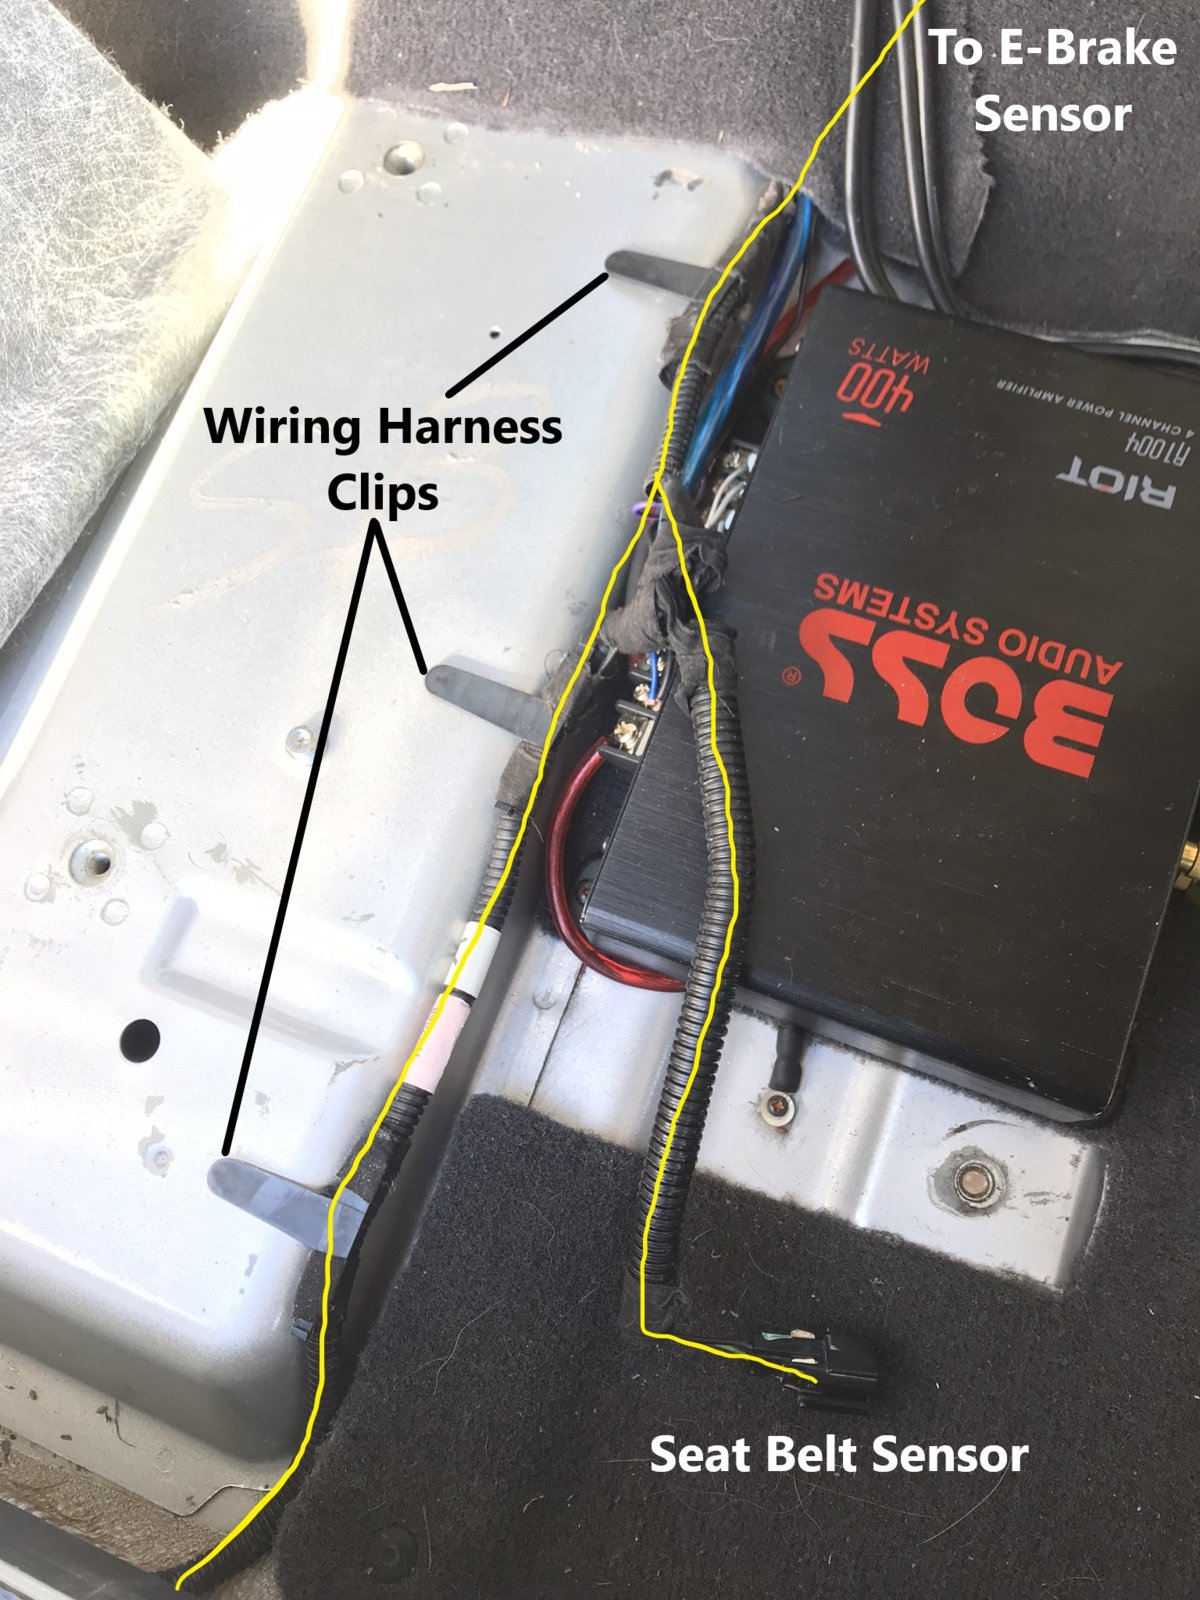 hight resolution of the e brake sensor is underneath the center console disconnect the plug and remove the wiring harness clip